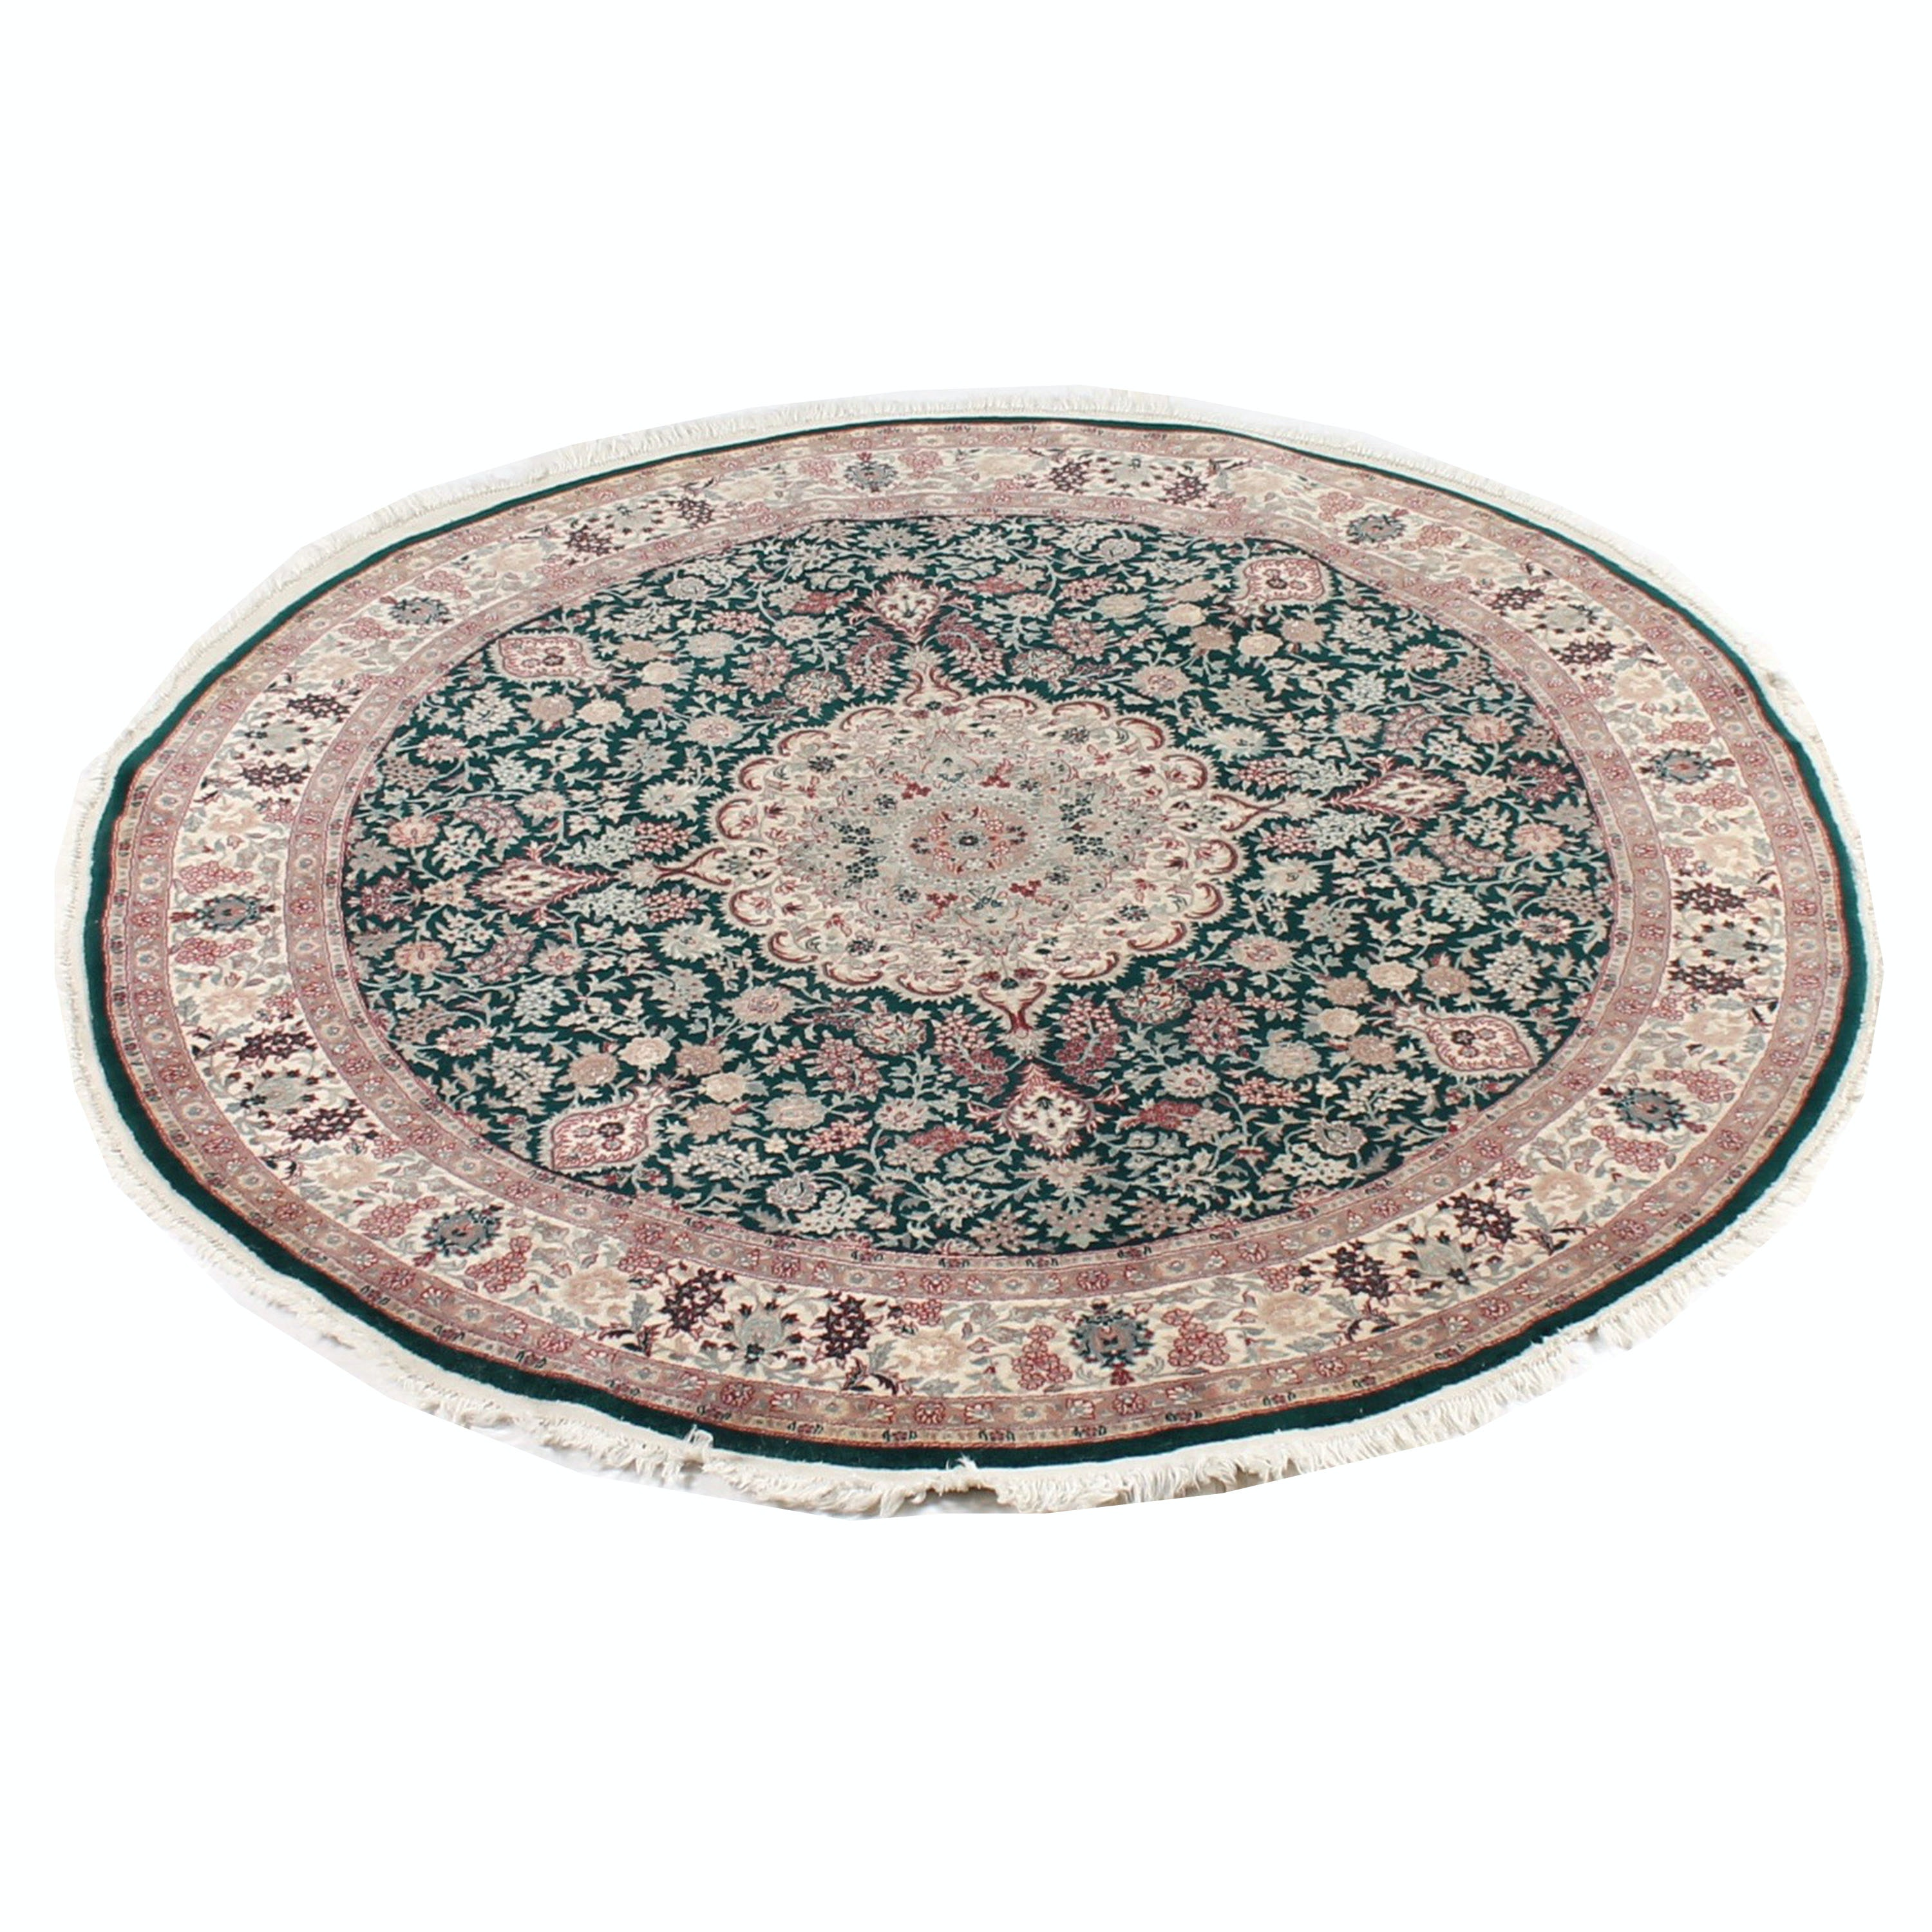 Hand-Knotted Indo-Persian Round Area Rug